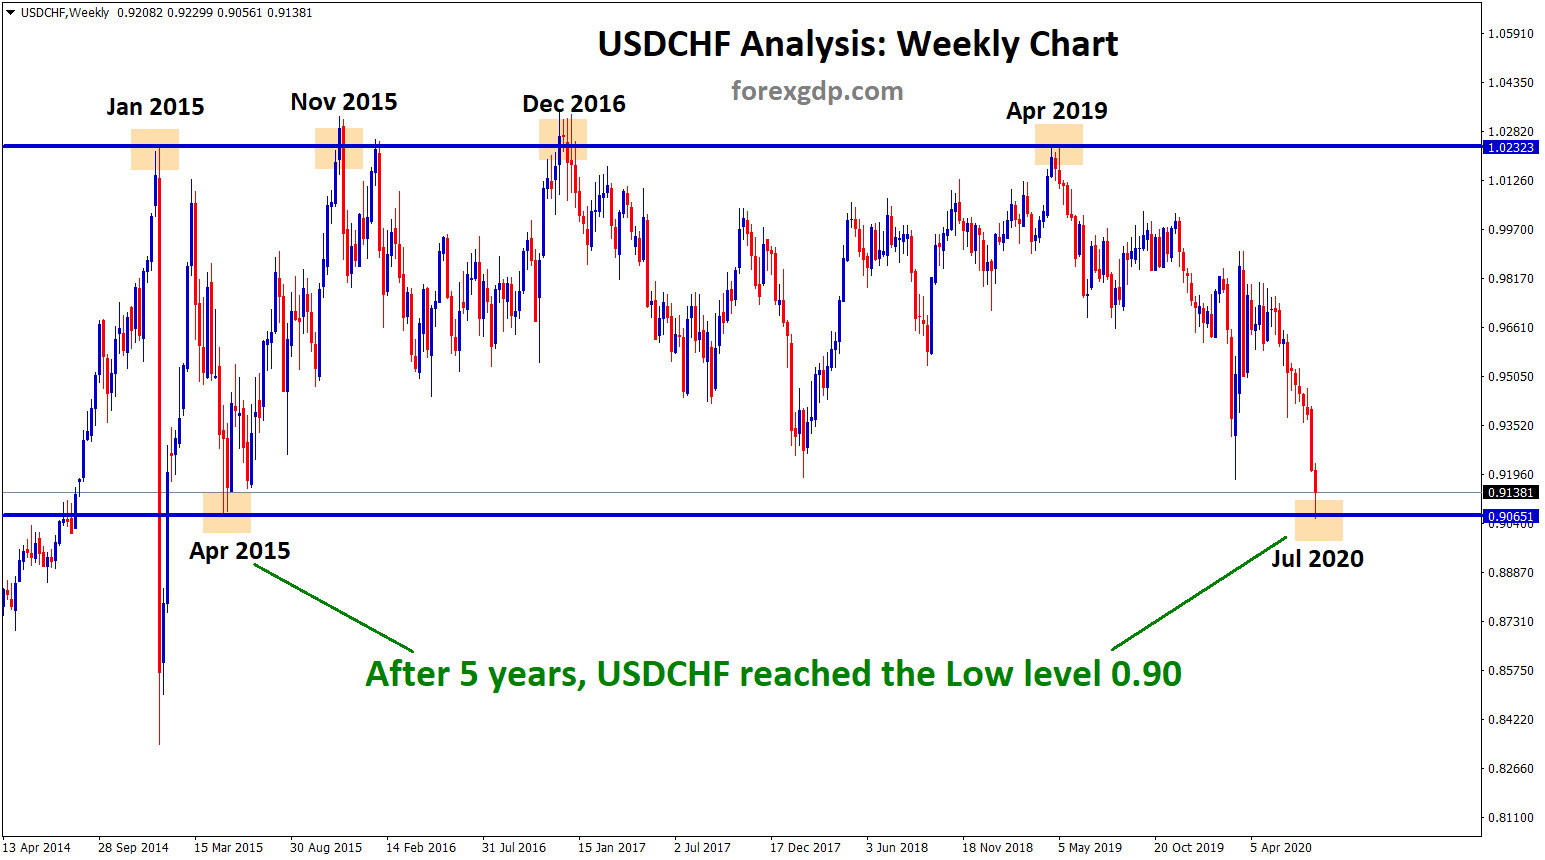 USDCHF hits the low after 5 years